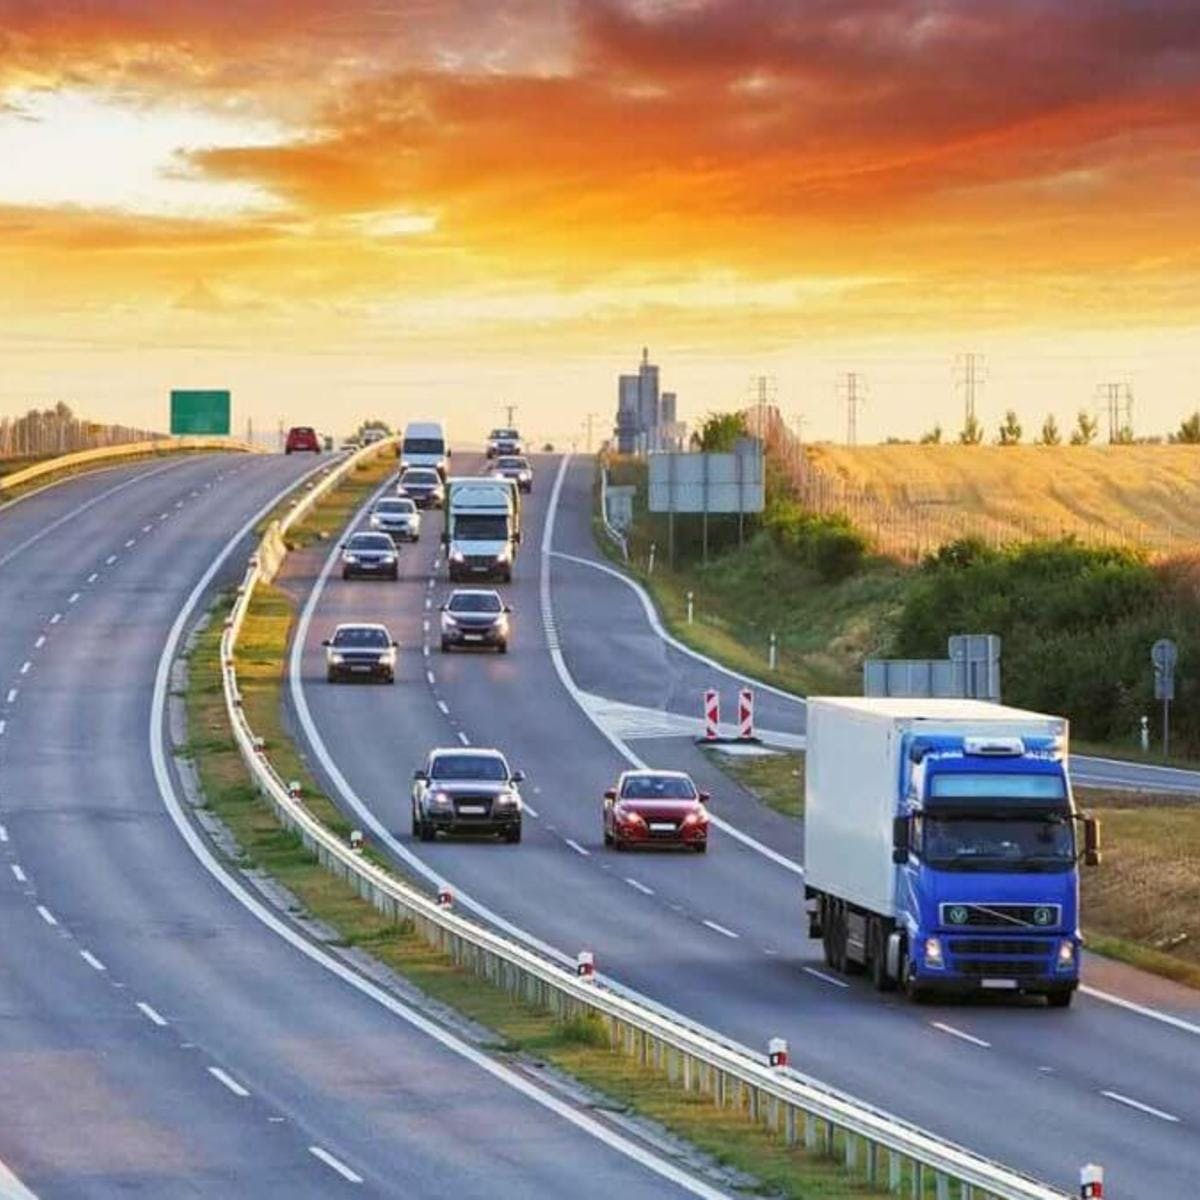 Cross-border road transport in EU law context